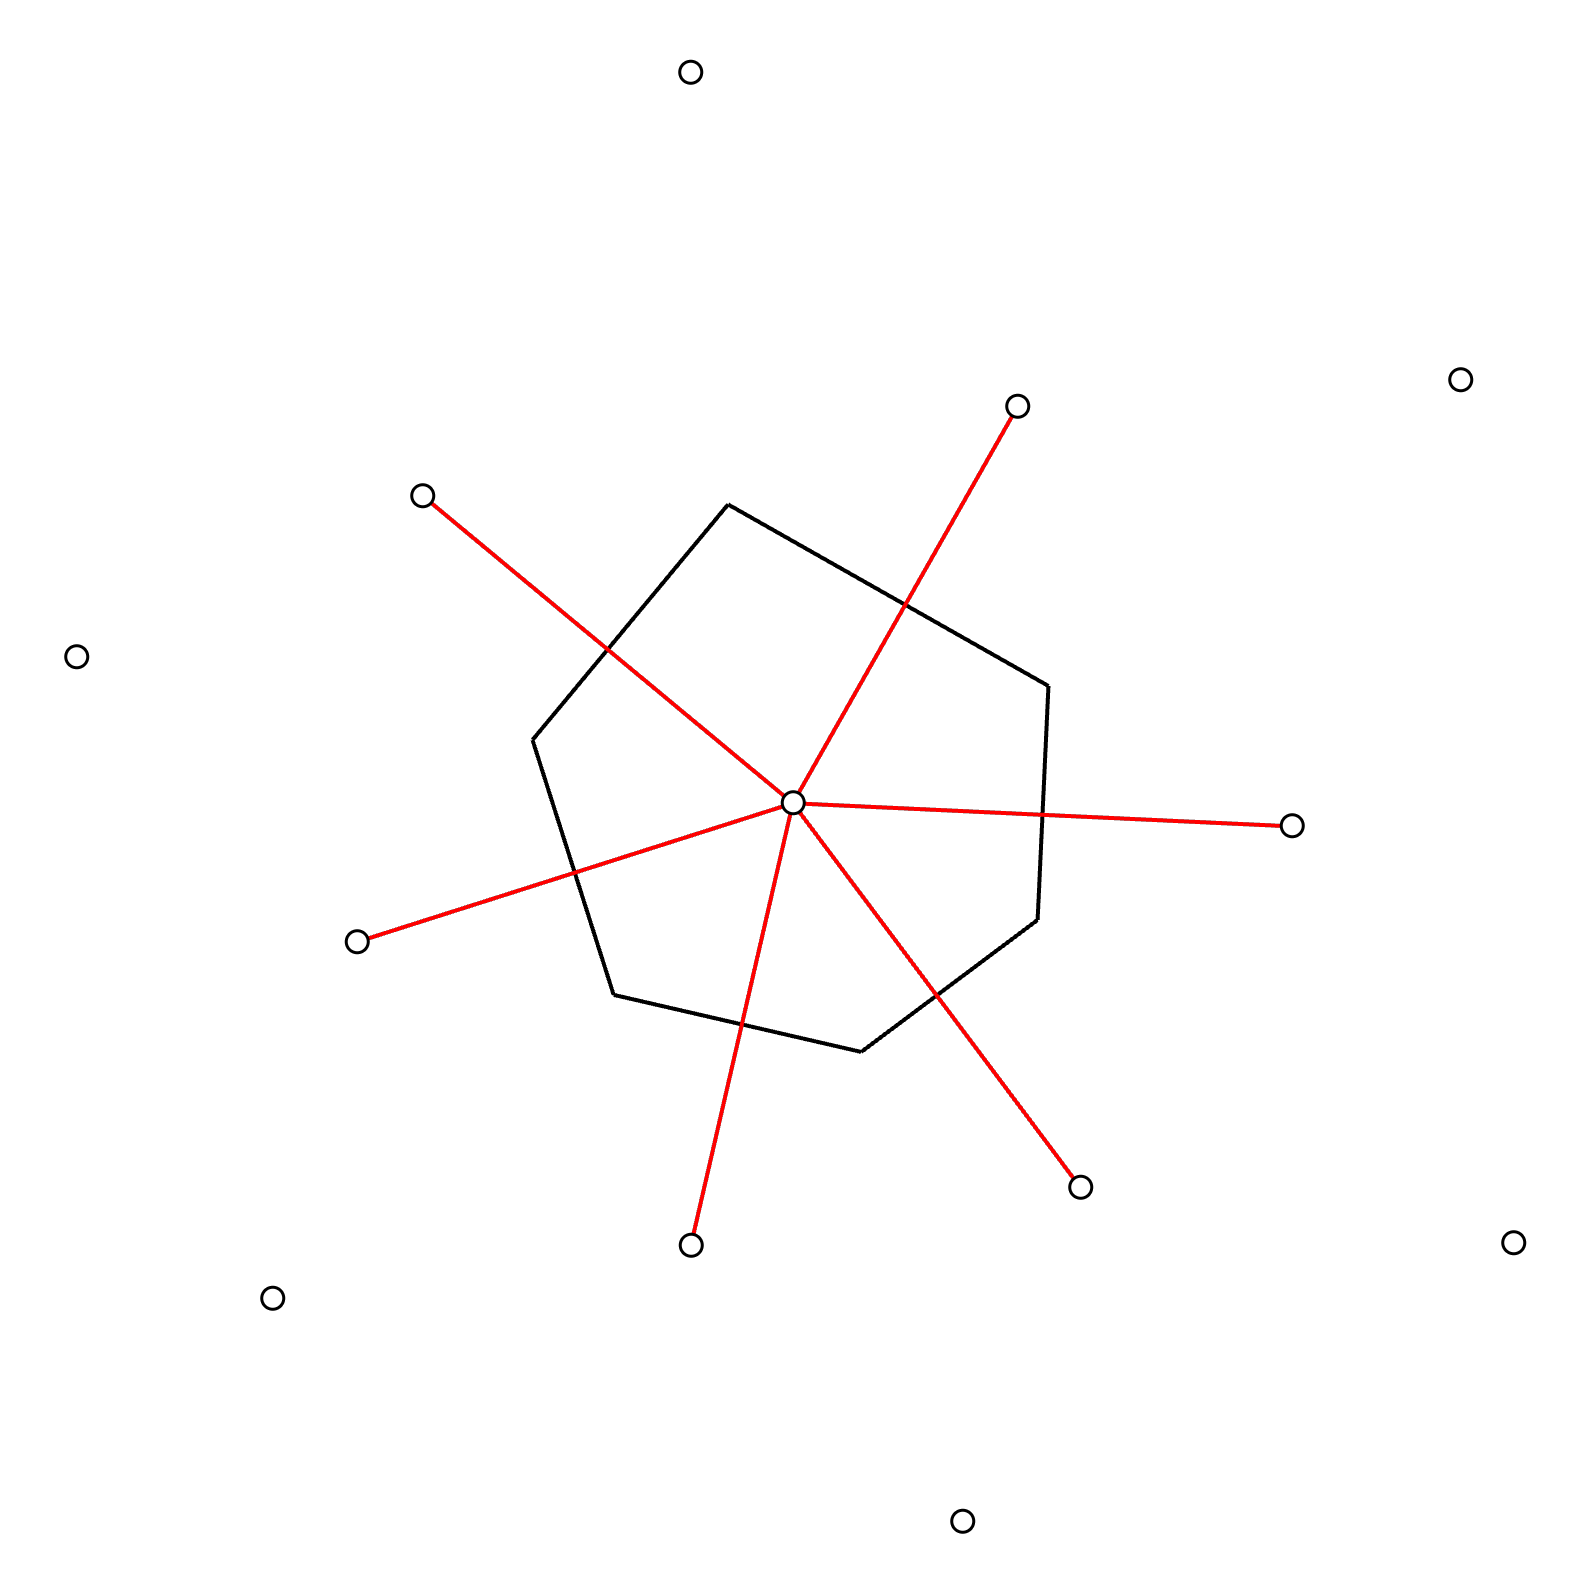 Step 6: Form a polygon from the perpendicular lines. The irregular tributary areas start to emerge.